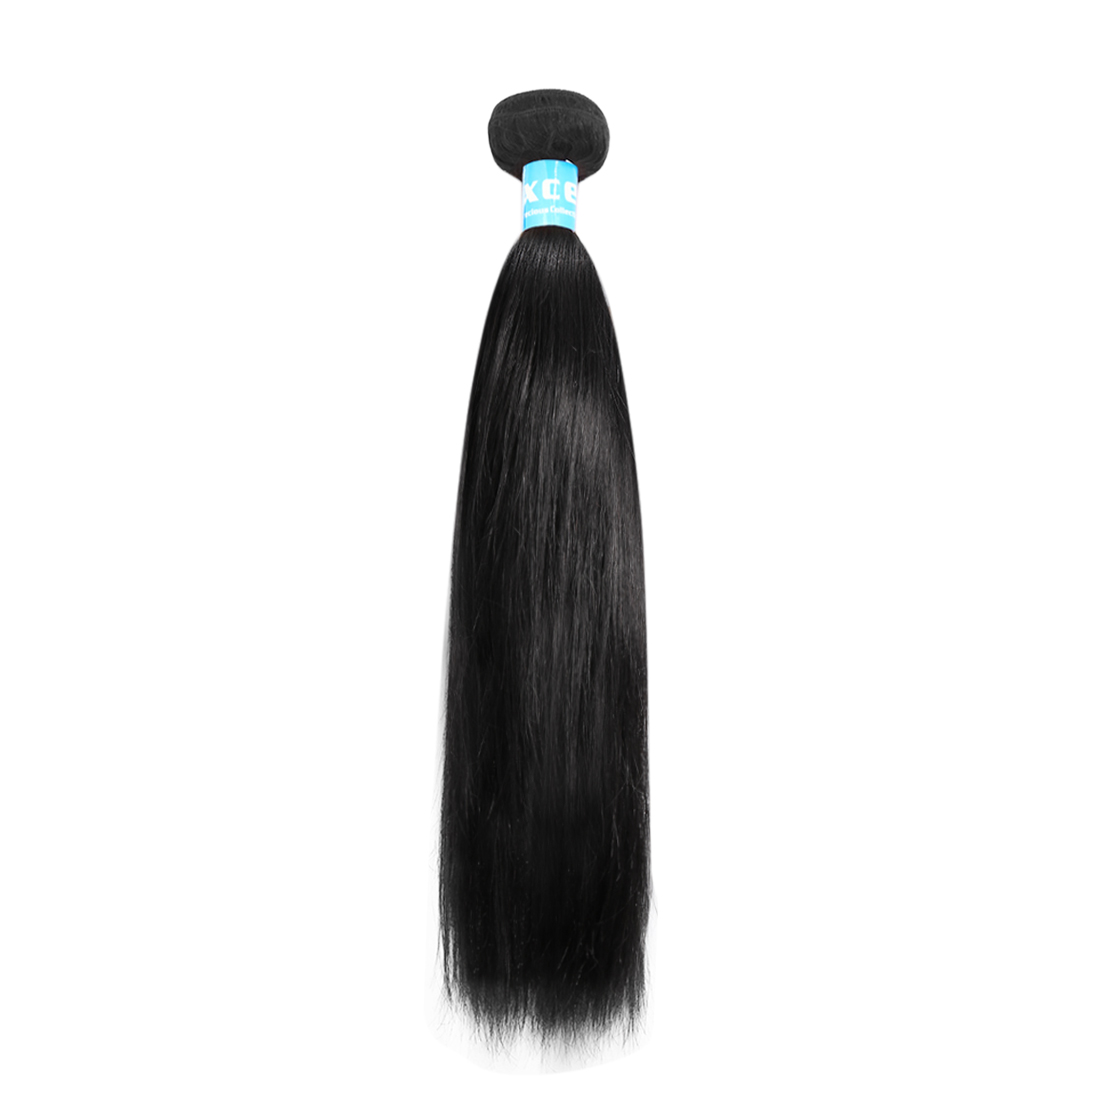 "Brazilian Remy Silky Straight Human Hair Weave Weft Extensions 6A 16"" 1 Bundle"